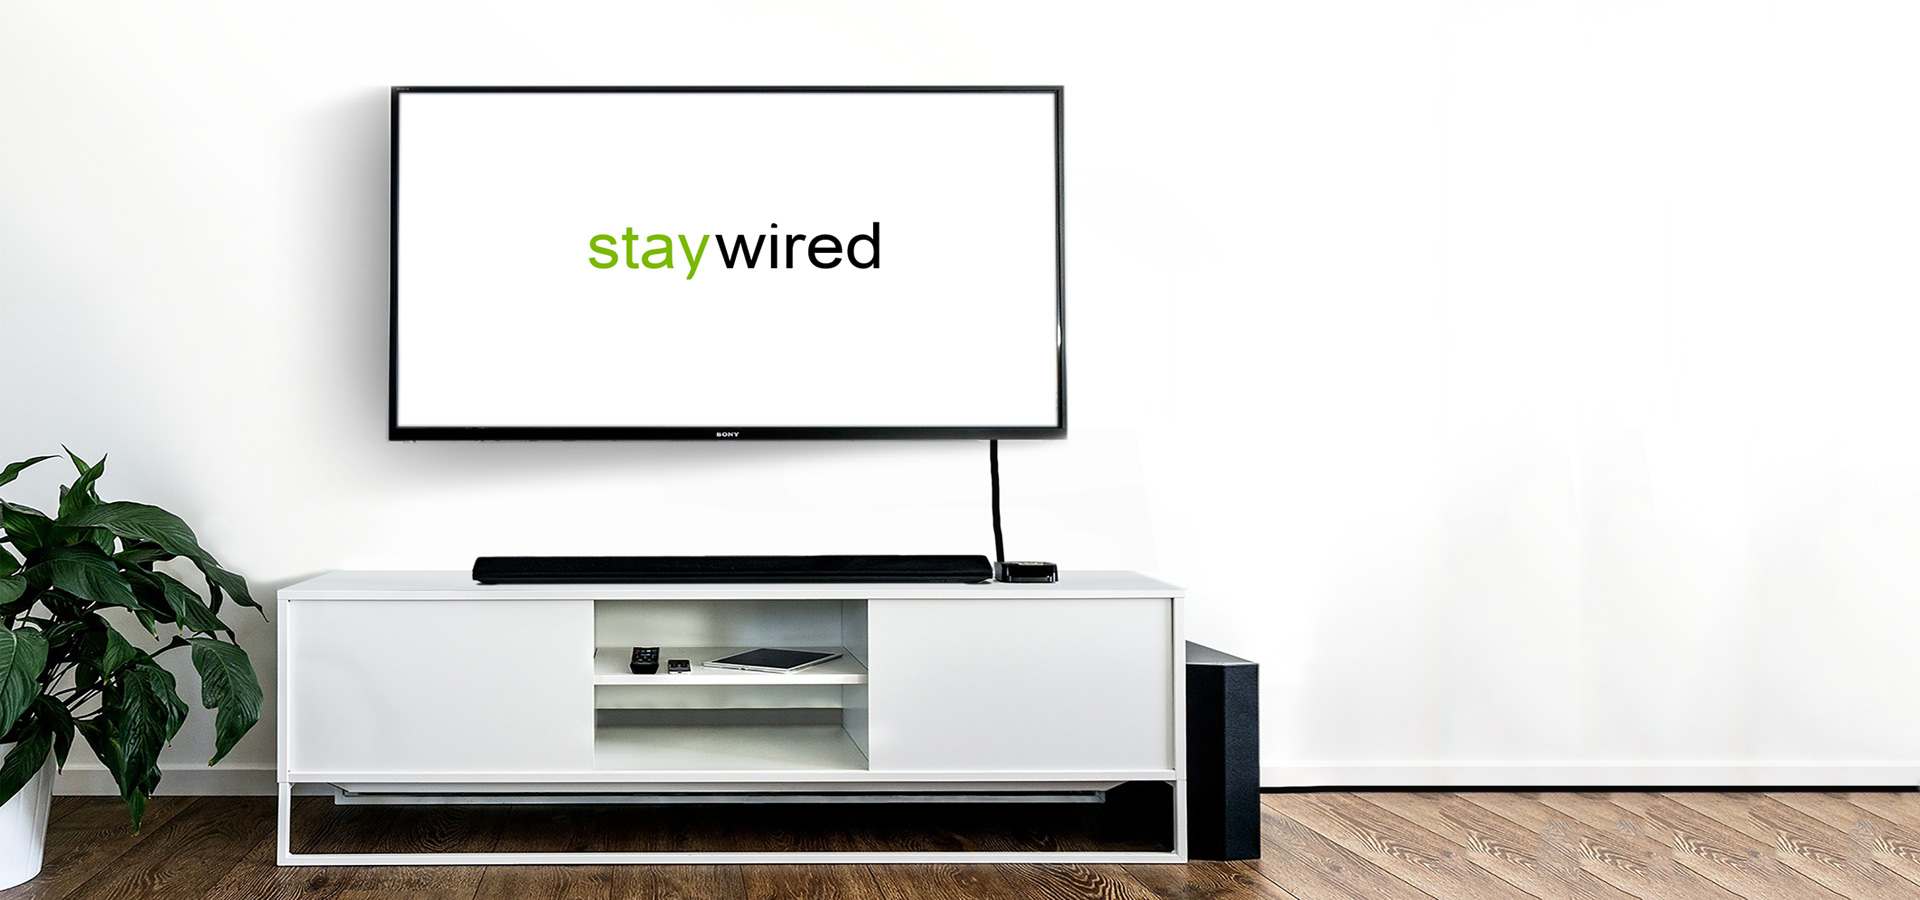 staywired.